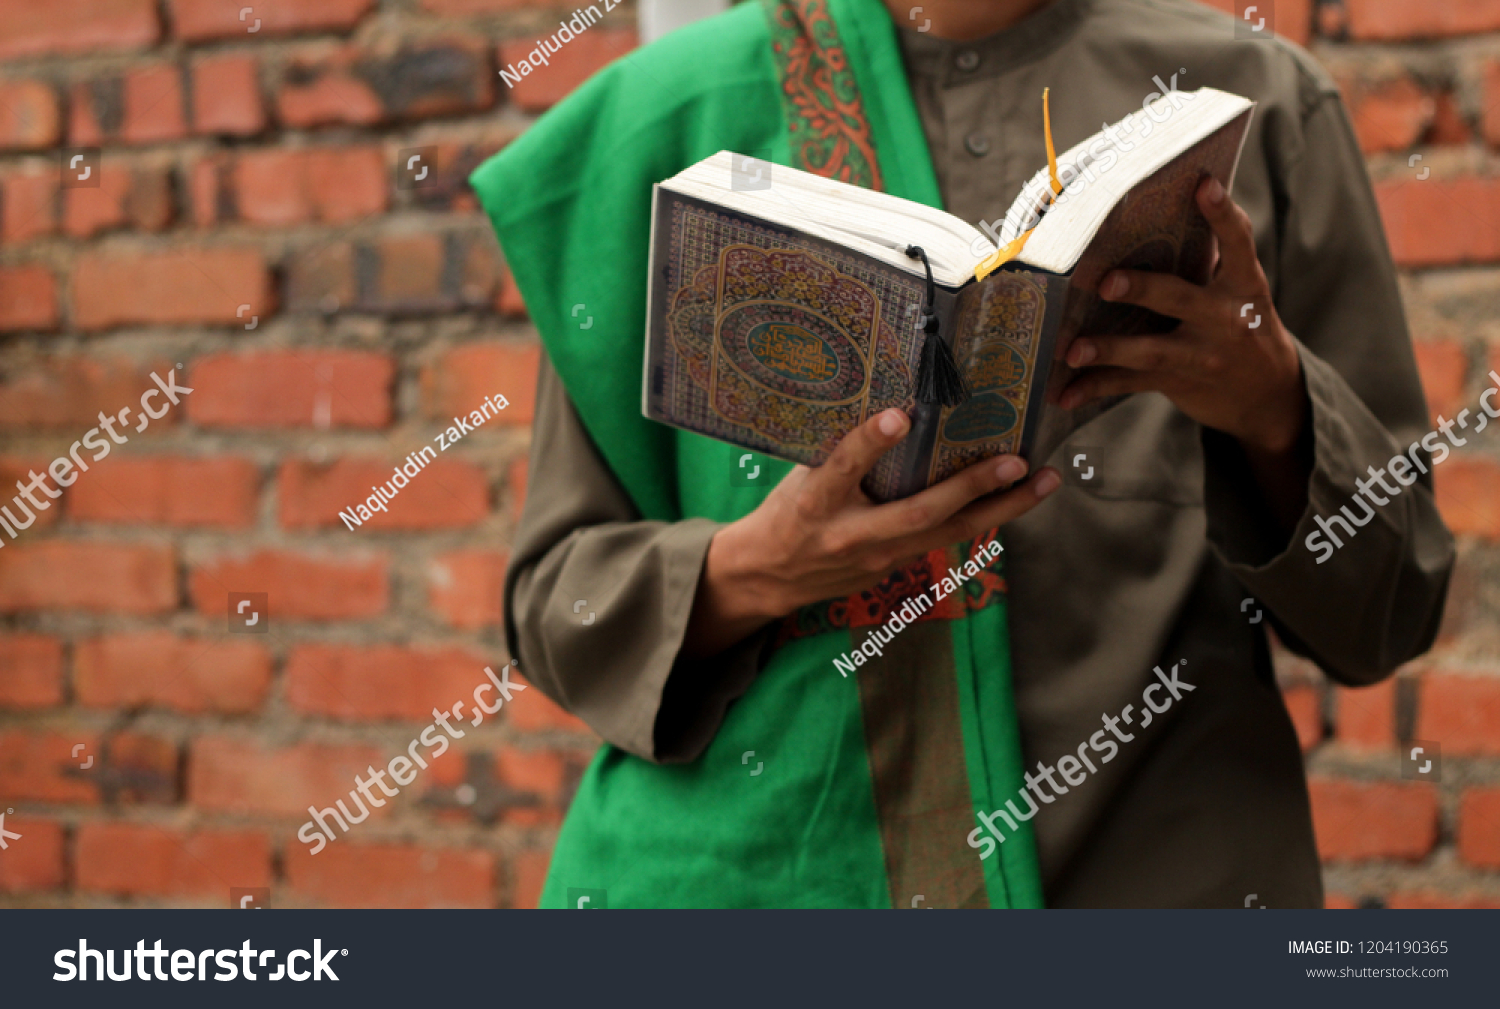 Quran Hold By Hand Blurred Background Stock Photo (Edit Now) 1204190365